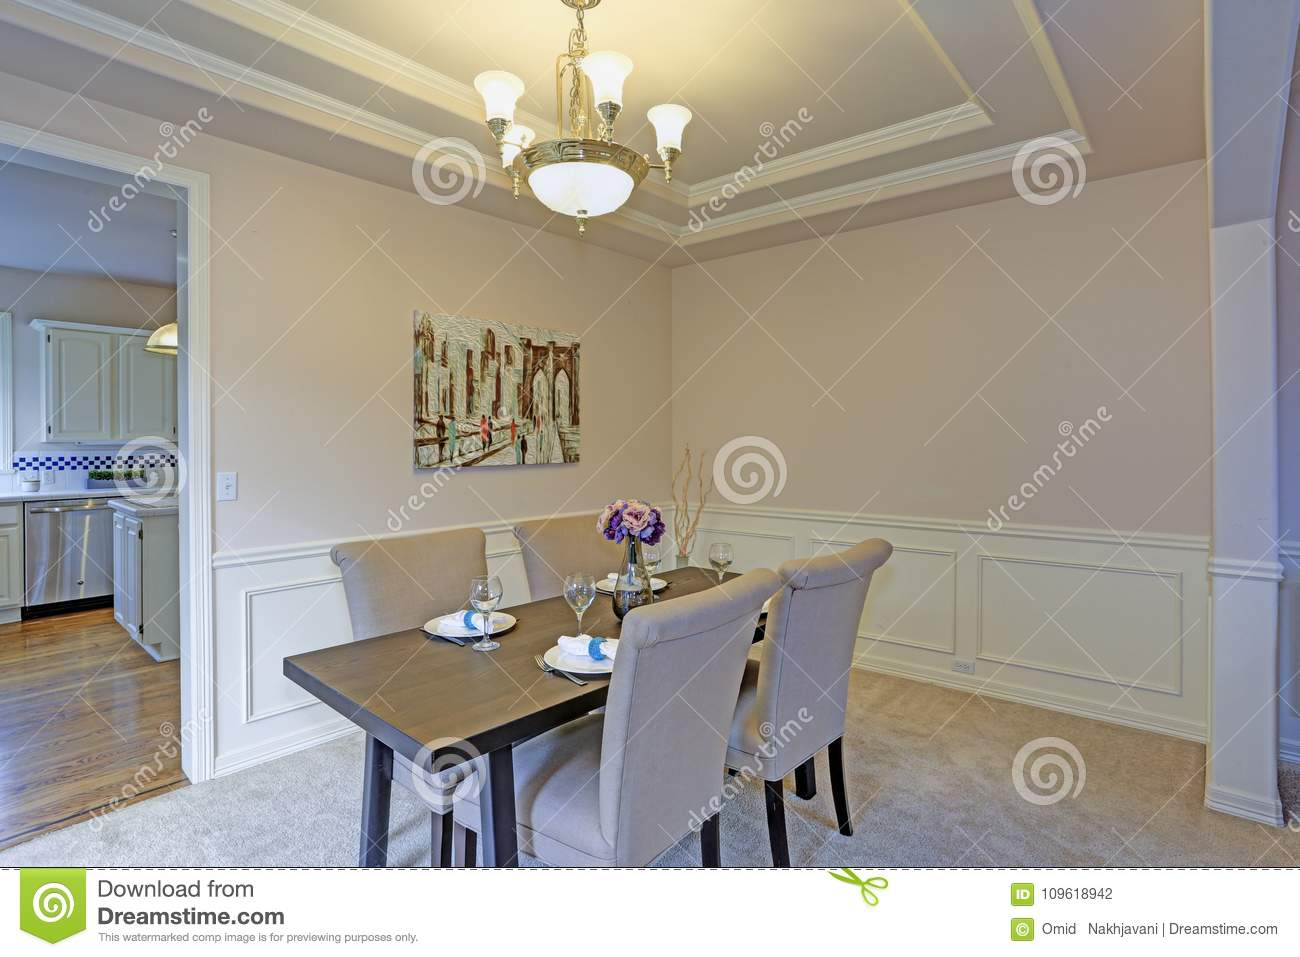 Chic Dining Room Accented With Wall Panel Mouldings And Tray Ceiling Stock Photo Image Of Estate Family 109618942